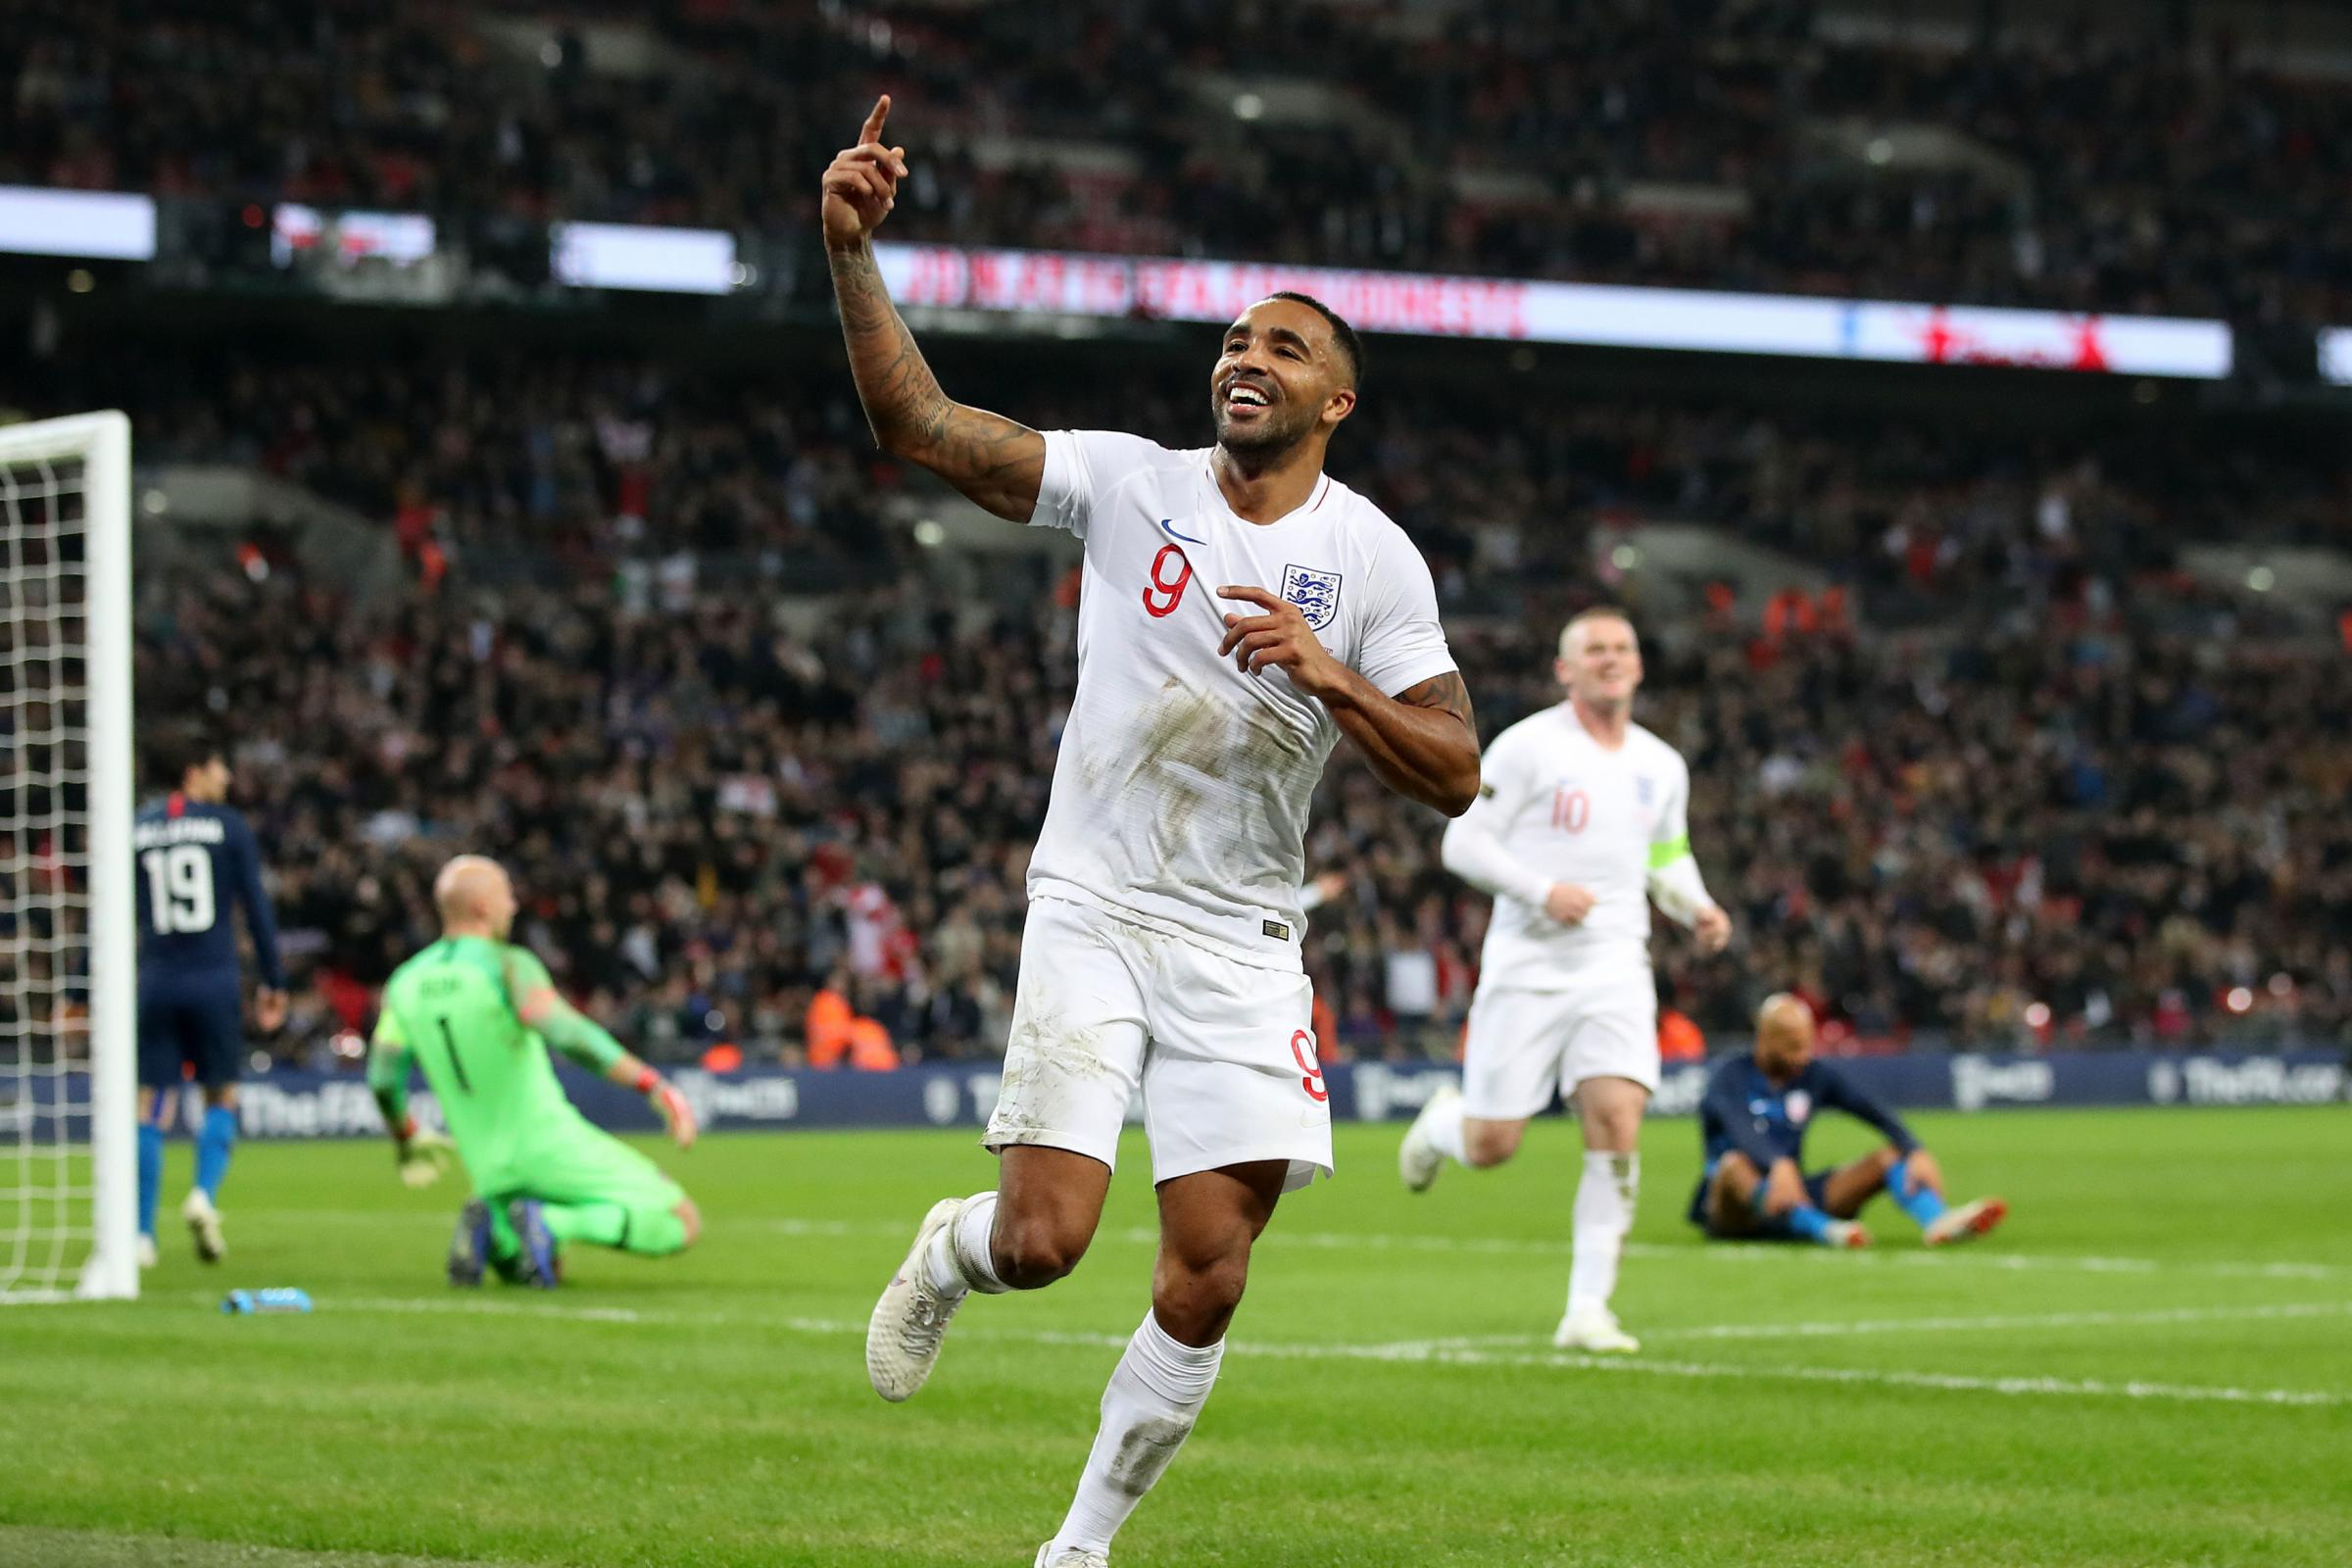 Wilson scores on dream England debut at Wembley